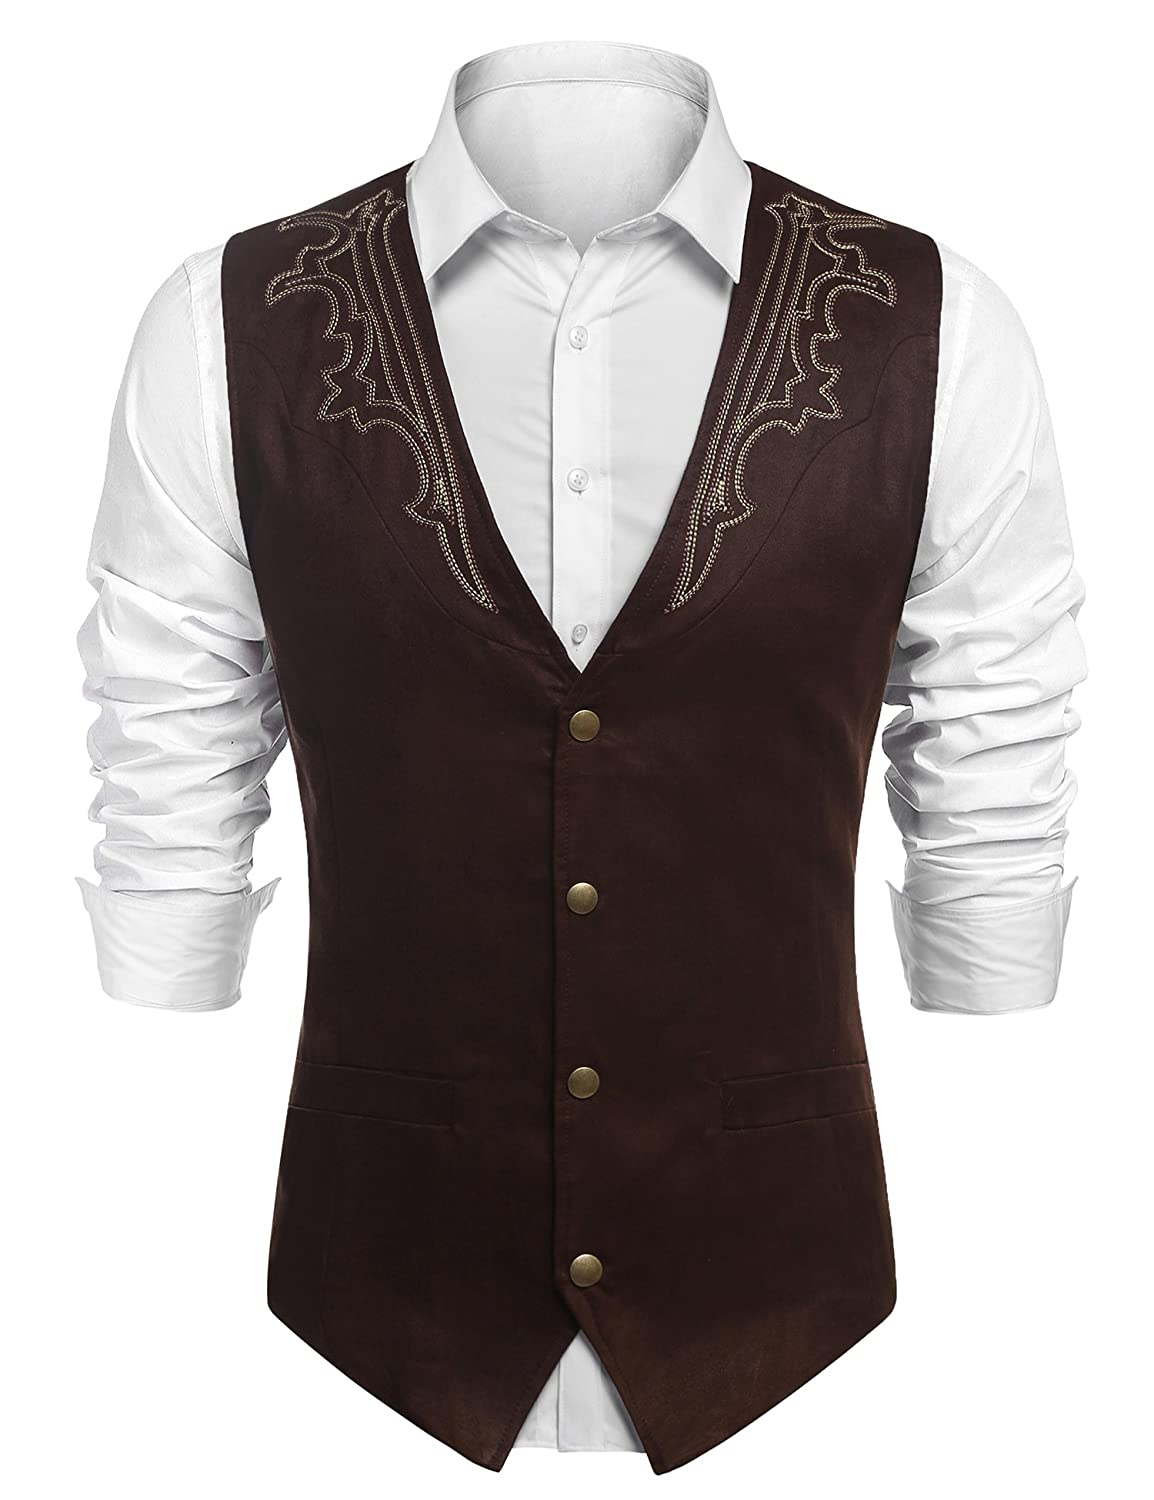 Men's Steampunk Vests, Waistcoats, Corsets COOFANDY Mens Suede Leather Suit Vest Casual Western Vest Jacket Slim Fit Vest Waistcoat $33.99 AT vintagedancer.com